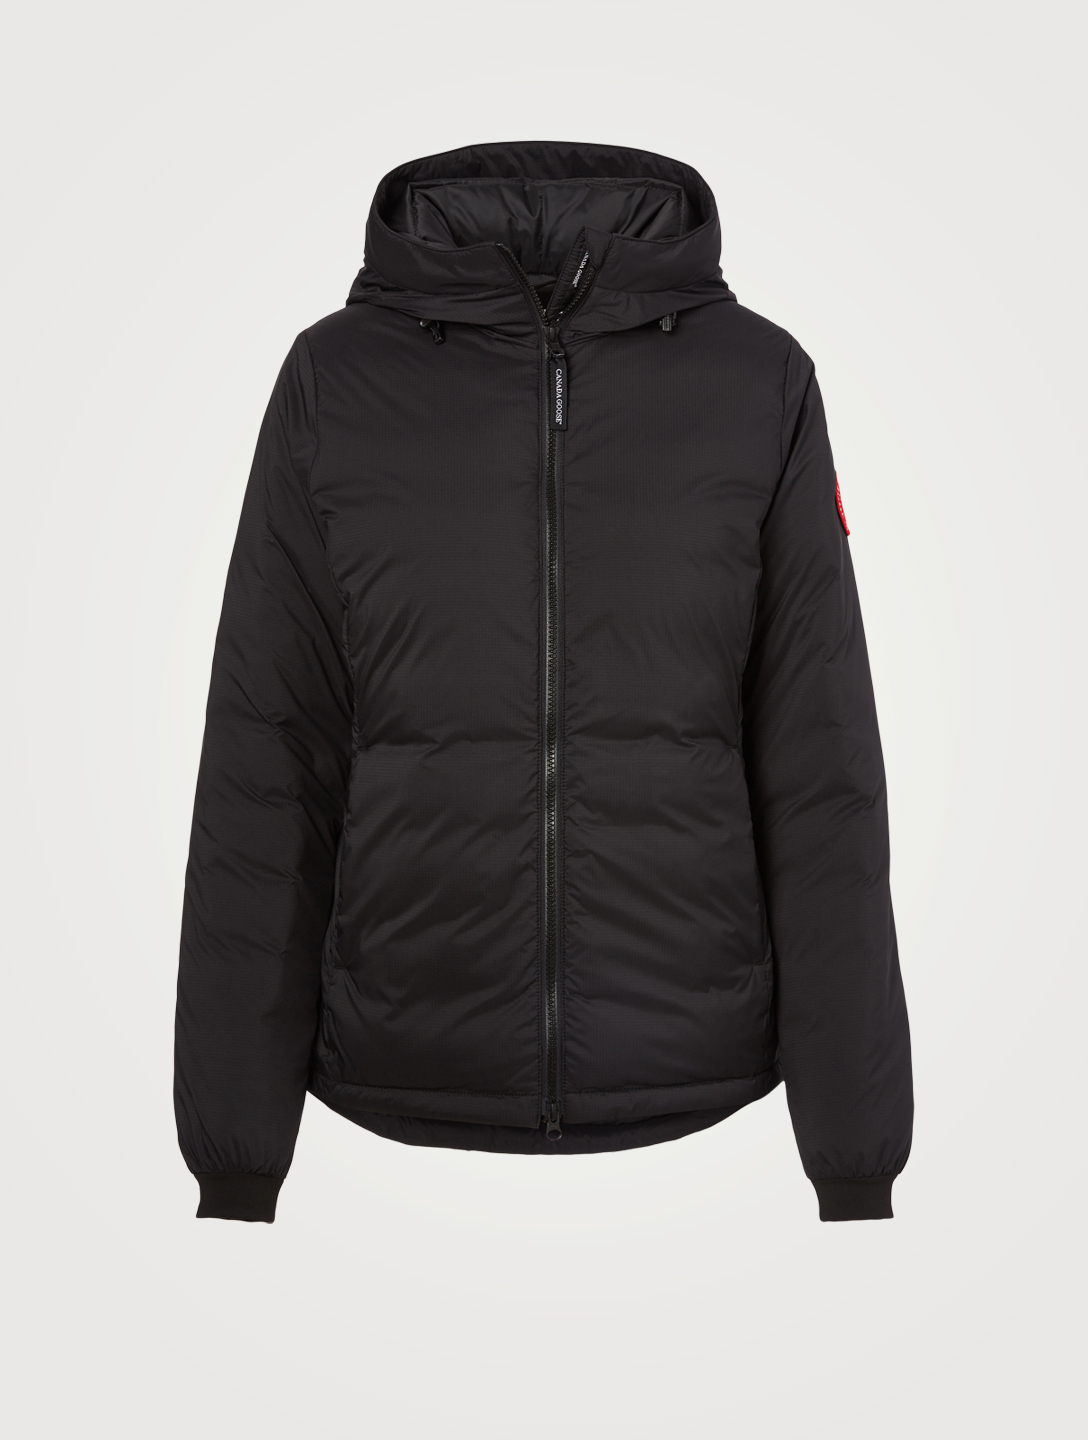 CANADA GOOSE Camp Hoody Down Jacket Women's Black